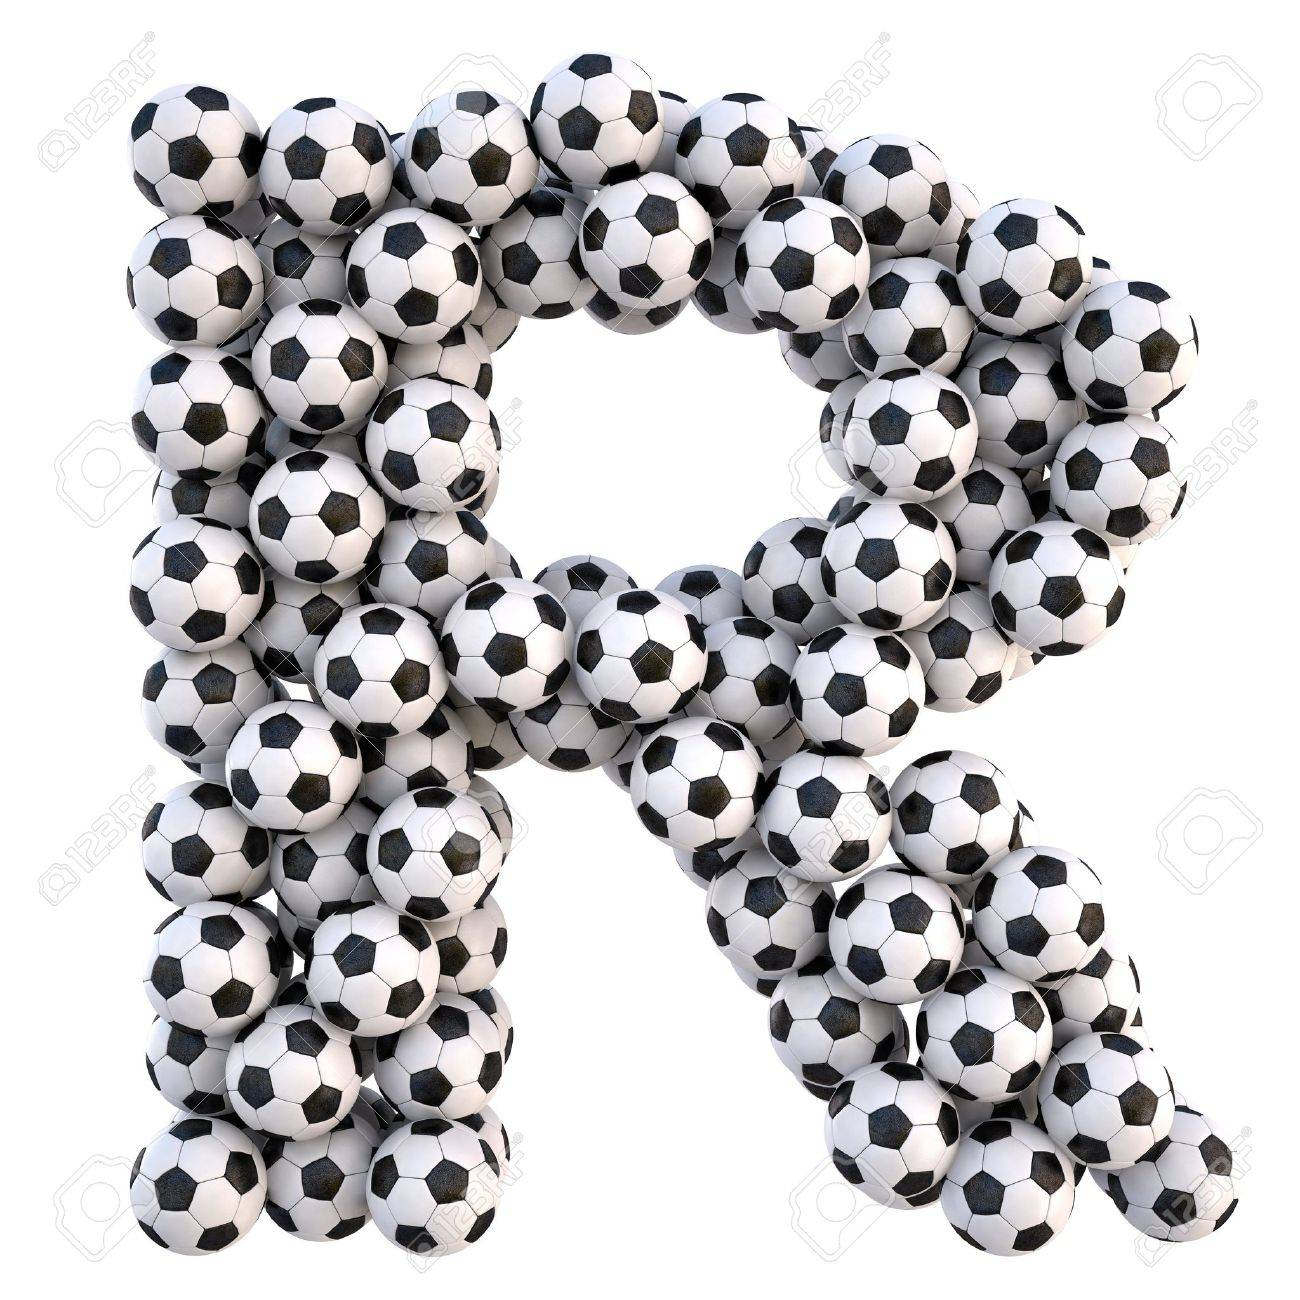 soccer balls in the form of letters. isolated on white. Stock Photo - 9523048